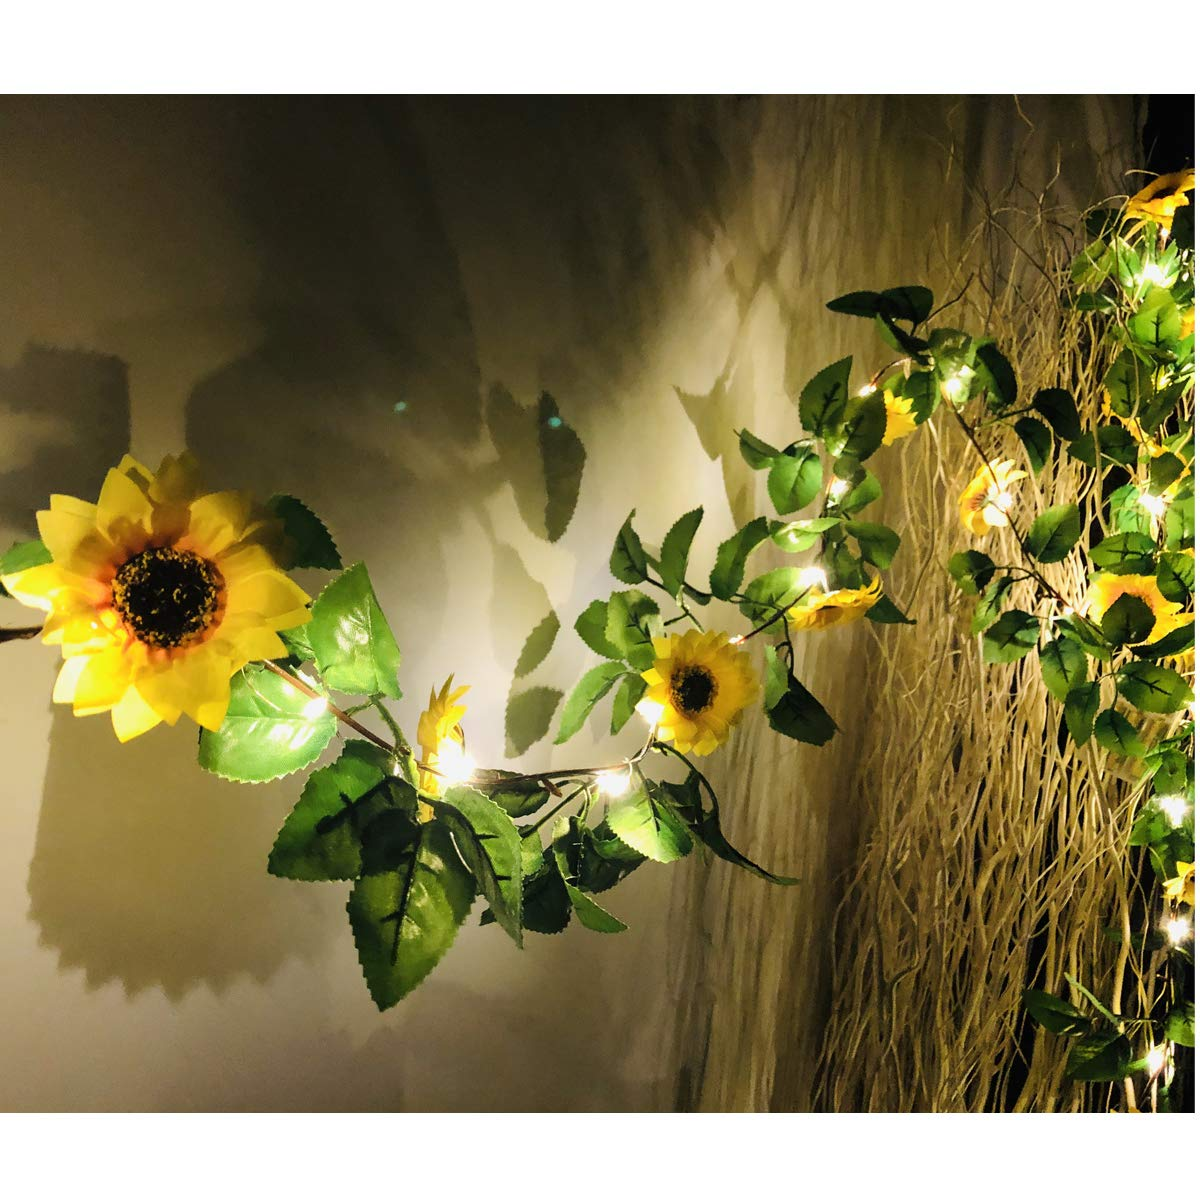 MeeDoo 20 LED Artificial Sunflower Garland String Lights, 6.56ft Silk Sunflower Vines with 9 Flower Heads Battery Operated Fairy Night Lights for Indoor Bedroom Wedding Decor Home Garden Holiday